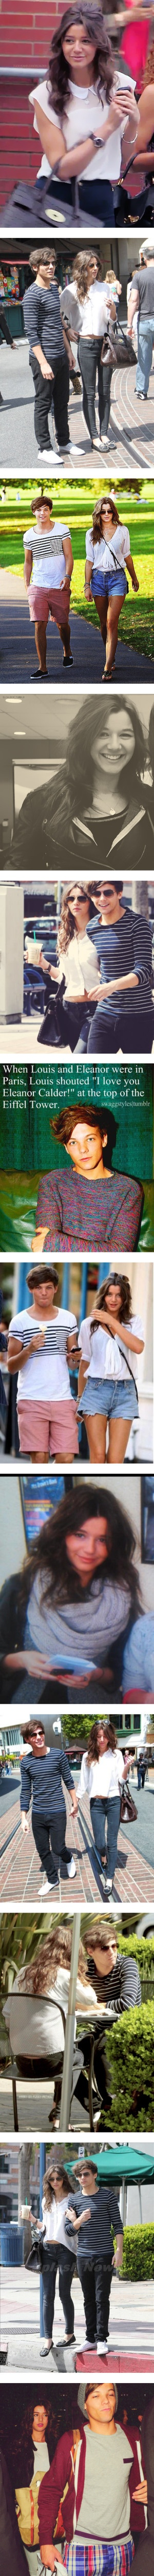 I love Eleanor!! She's so amazing! I mean even with all the hate she gets she still keeps dating Louis! Now that's proof it's real!>>>I SERIOUSLY WAS THERE WERE SOME OF THOSE PICTURES WERE TAKEN